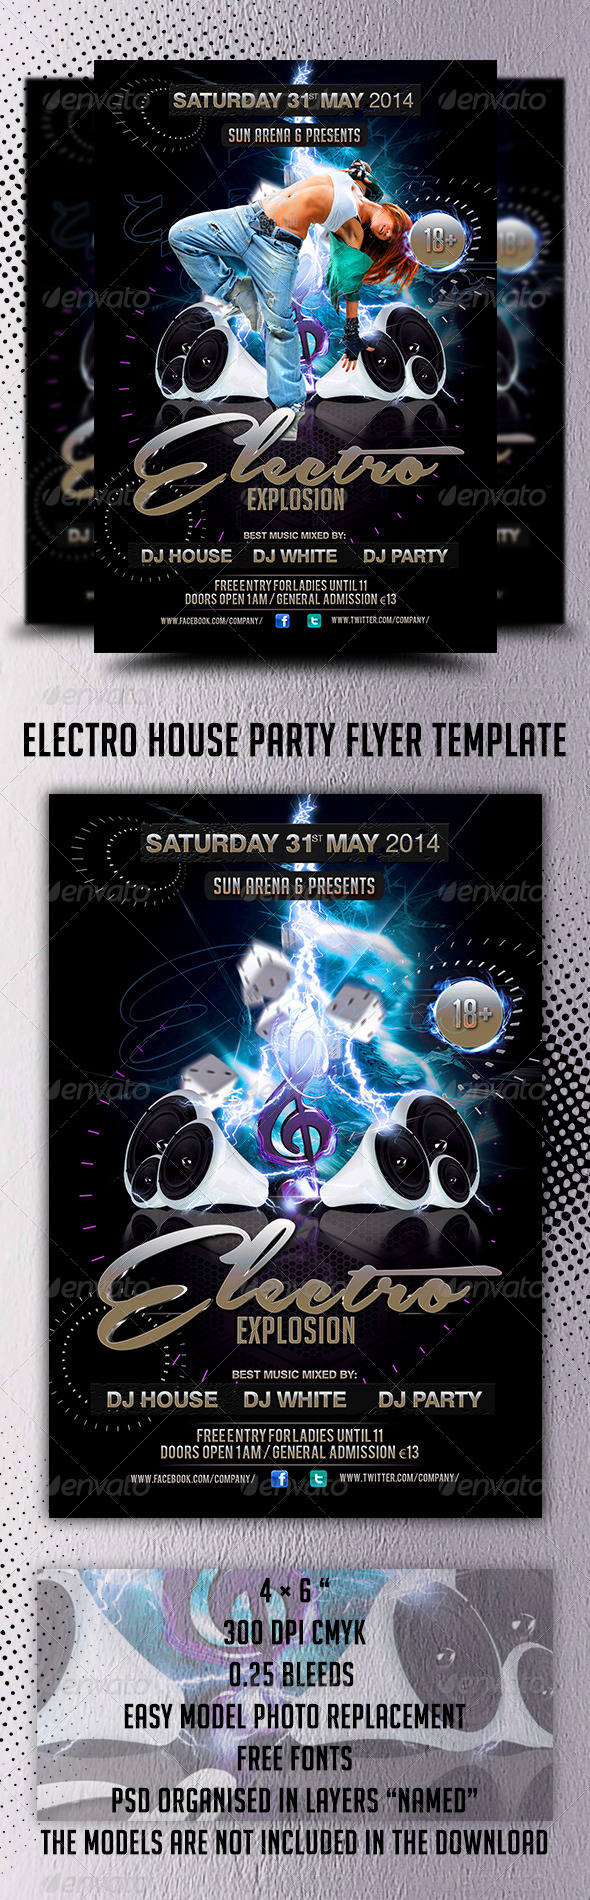 Electro House Party Flyer Template - Events Flyers